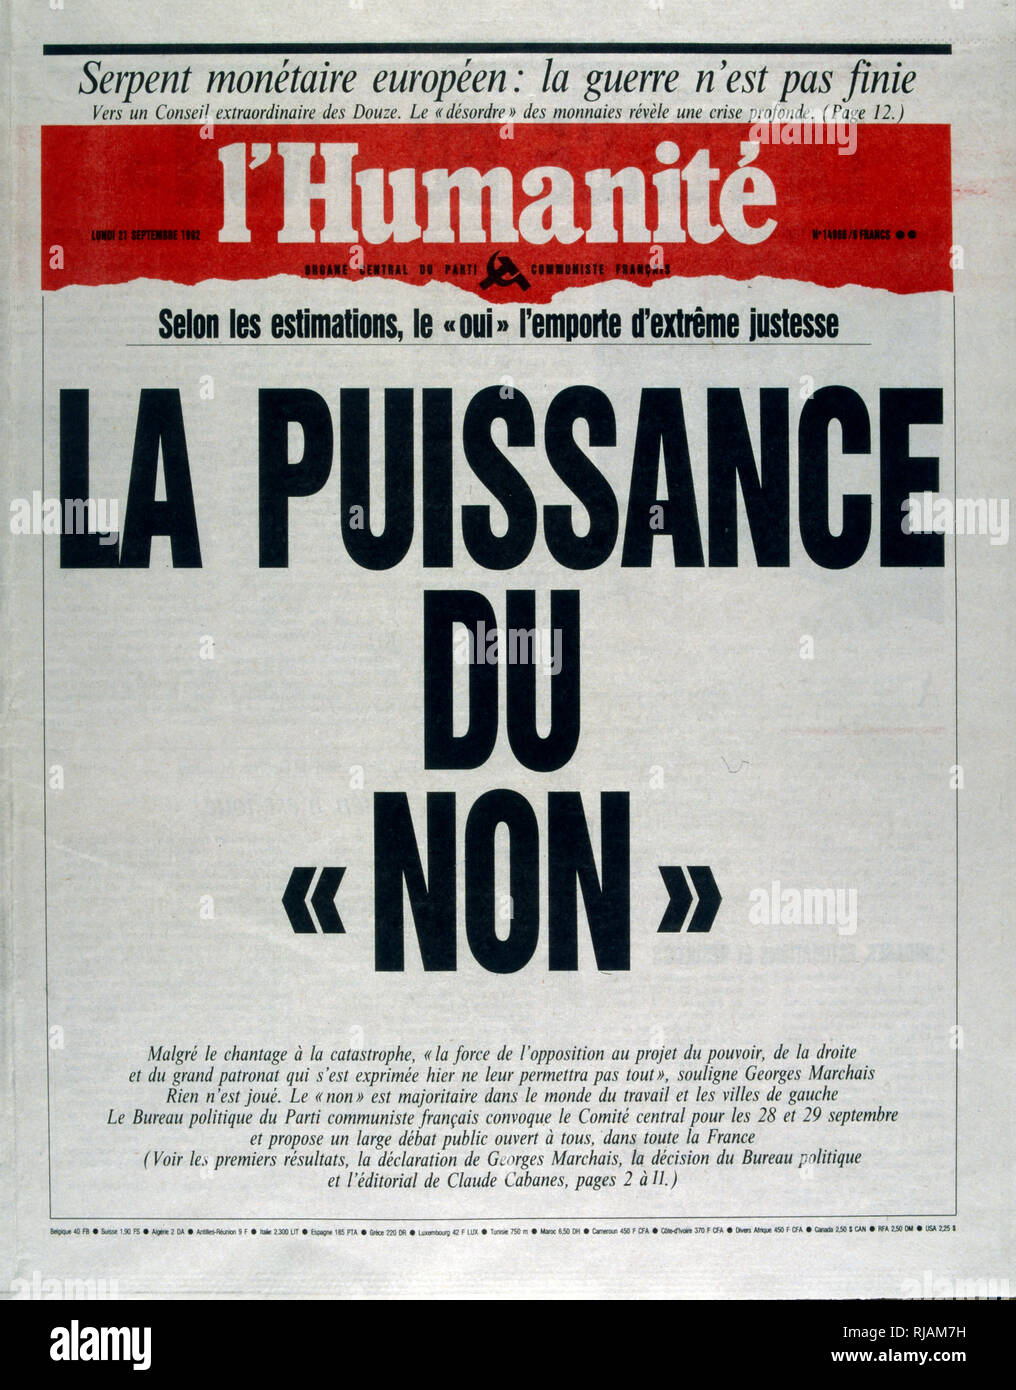 Cover of the  French newspaper 'L'Humanite' concerning the referendum on the Maastricht Treaty, held in France, in September 1992. It was approved by only 51% of the voters. The result of the referendum, known as the ''petit oui'', along with the Danish ''No'' vote are considered to be signals of the end of the ''permissive consensus'' on European integration which had existed in most of continental Europe until then. From this point forward issues relating to European integration were subject to much greater scrutiny across much of Europe, and overt euro scepticism gained prominence. Only Fra - Stock Image